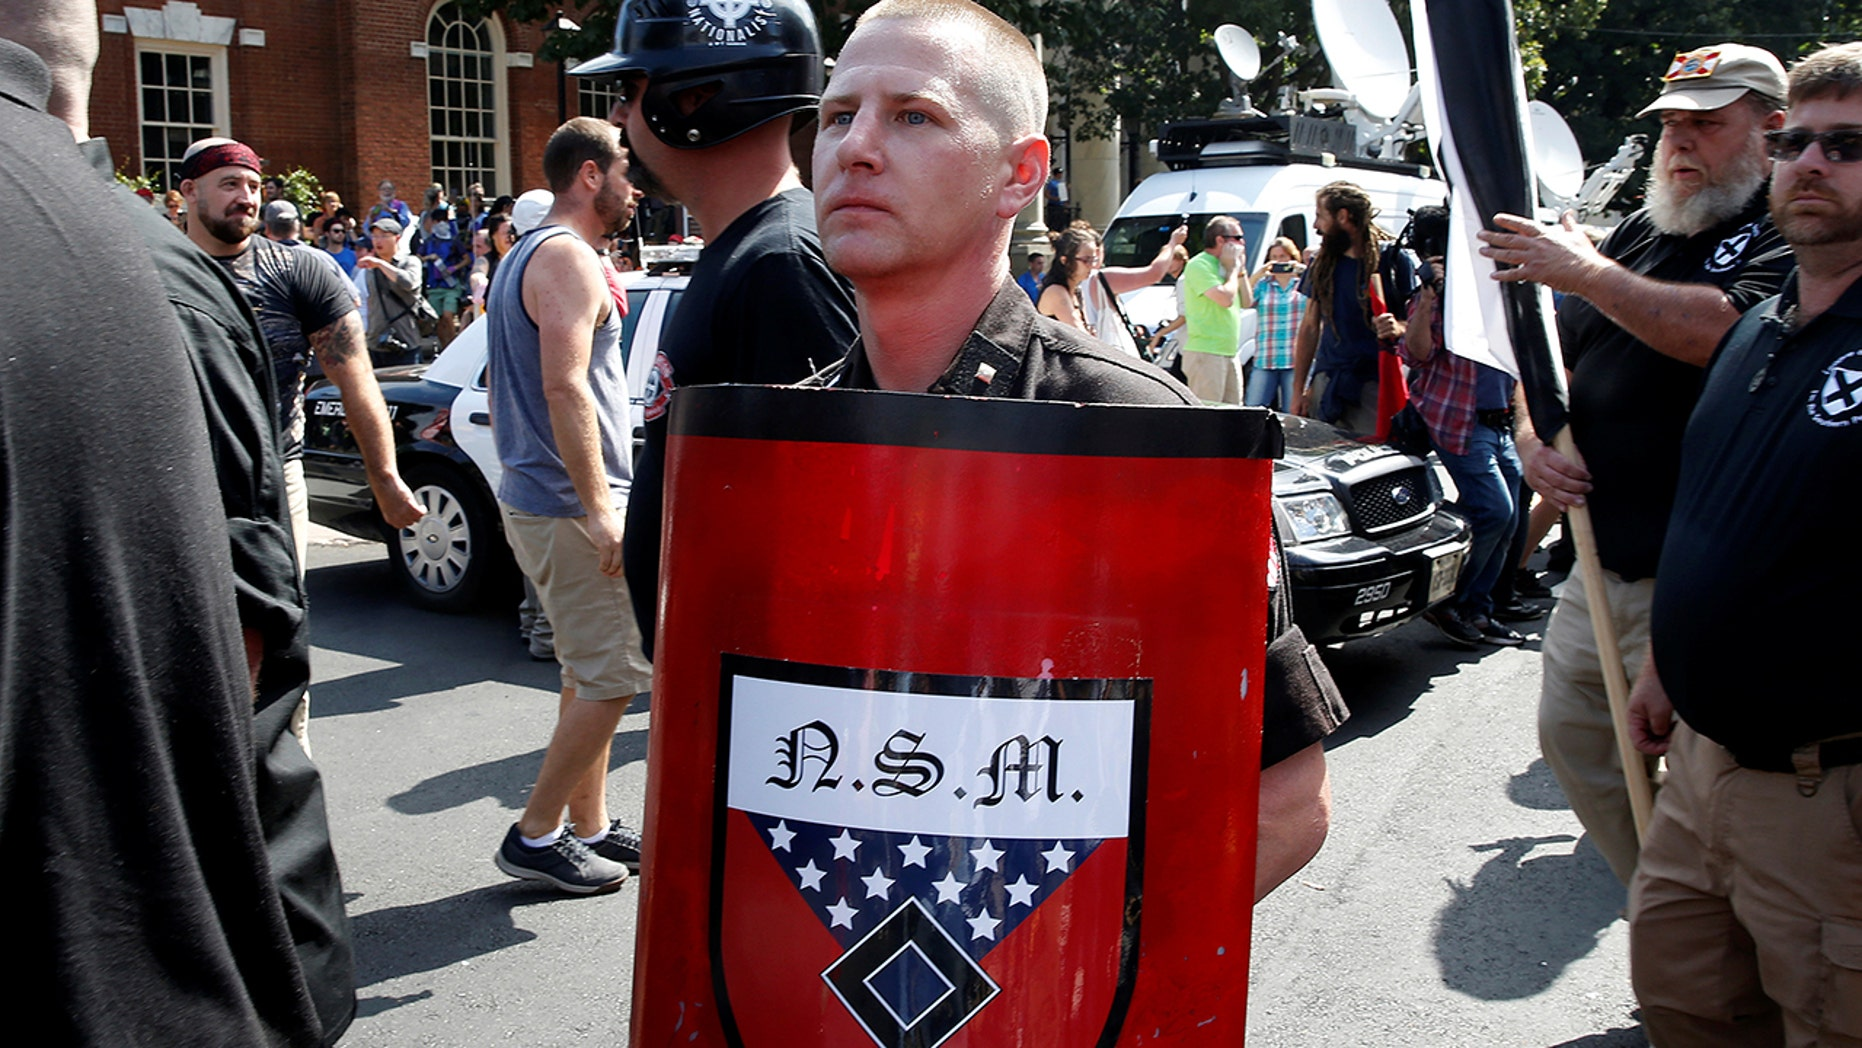 A white supremacist holds a shield with National Socialist Movement symbols on it as he arrives at a rally in Charlottesville, Va., Aug. 12, 2017.